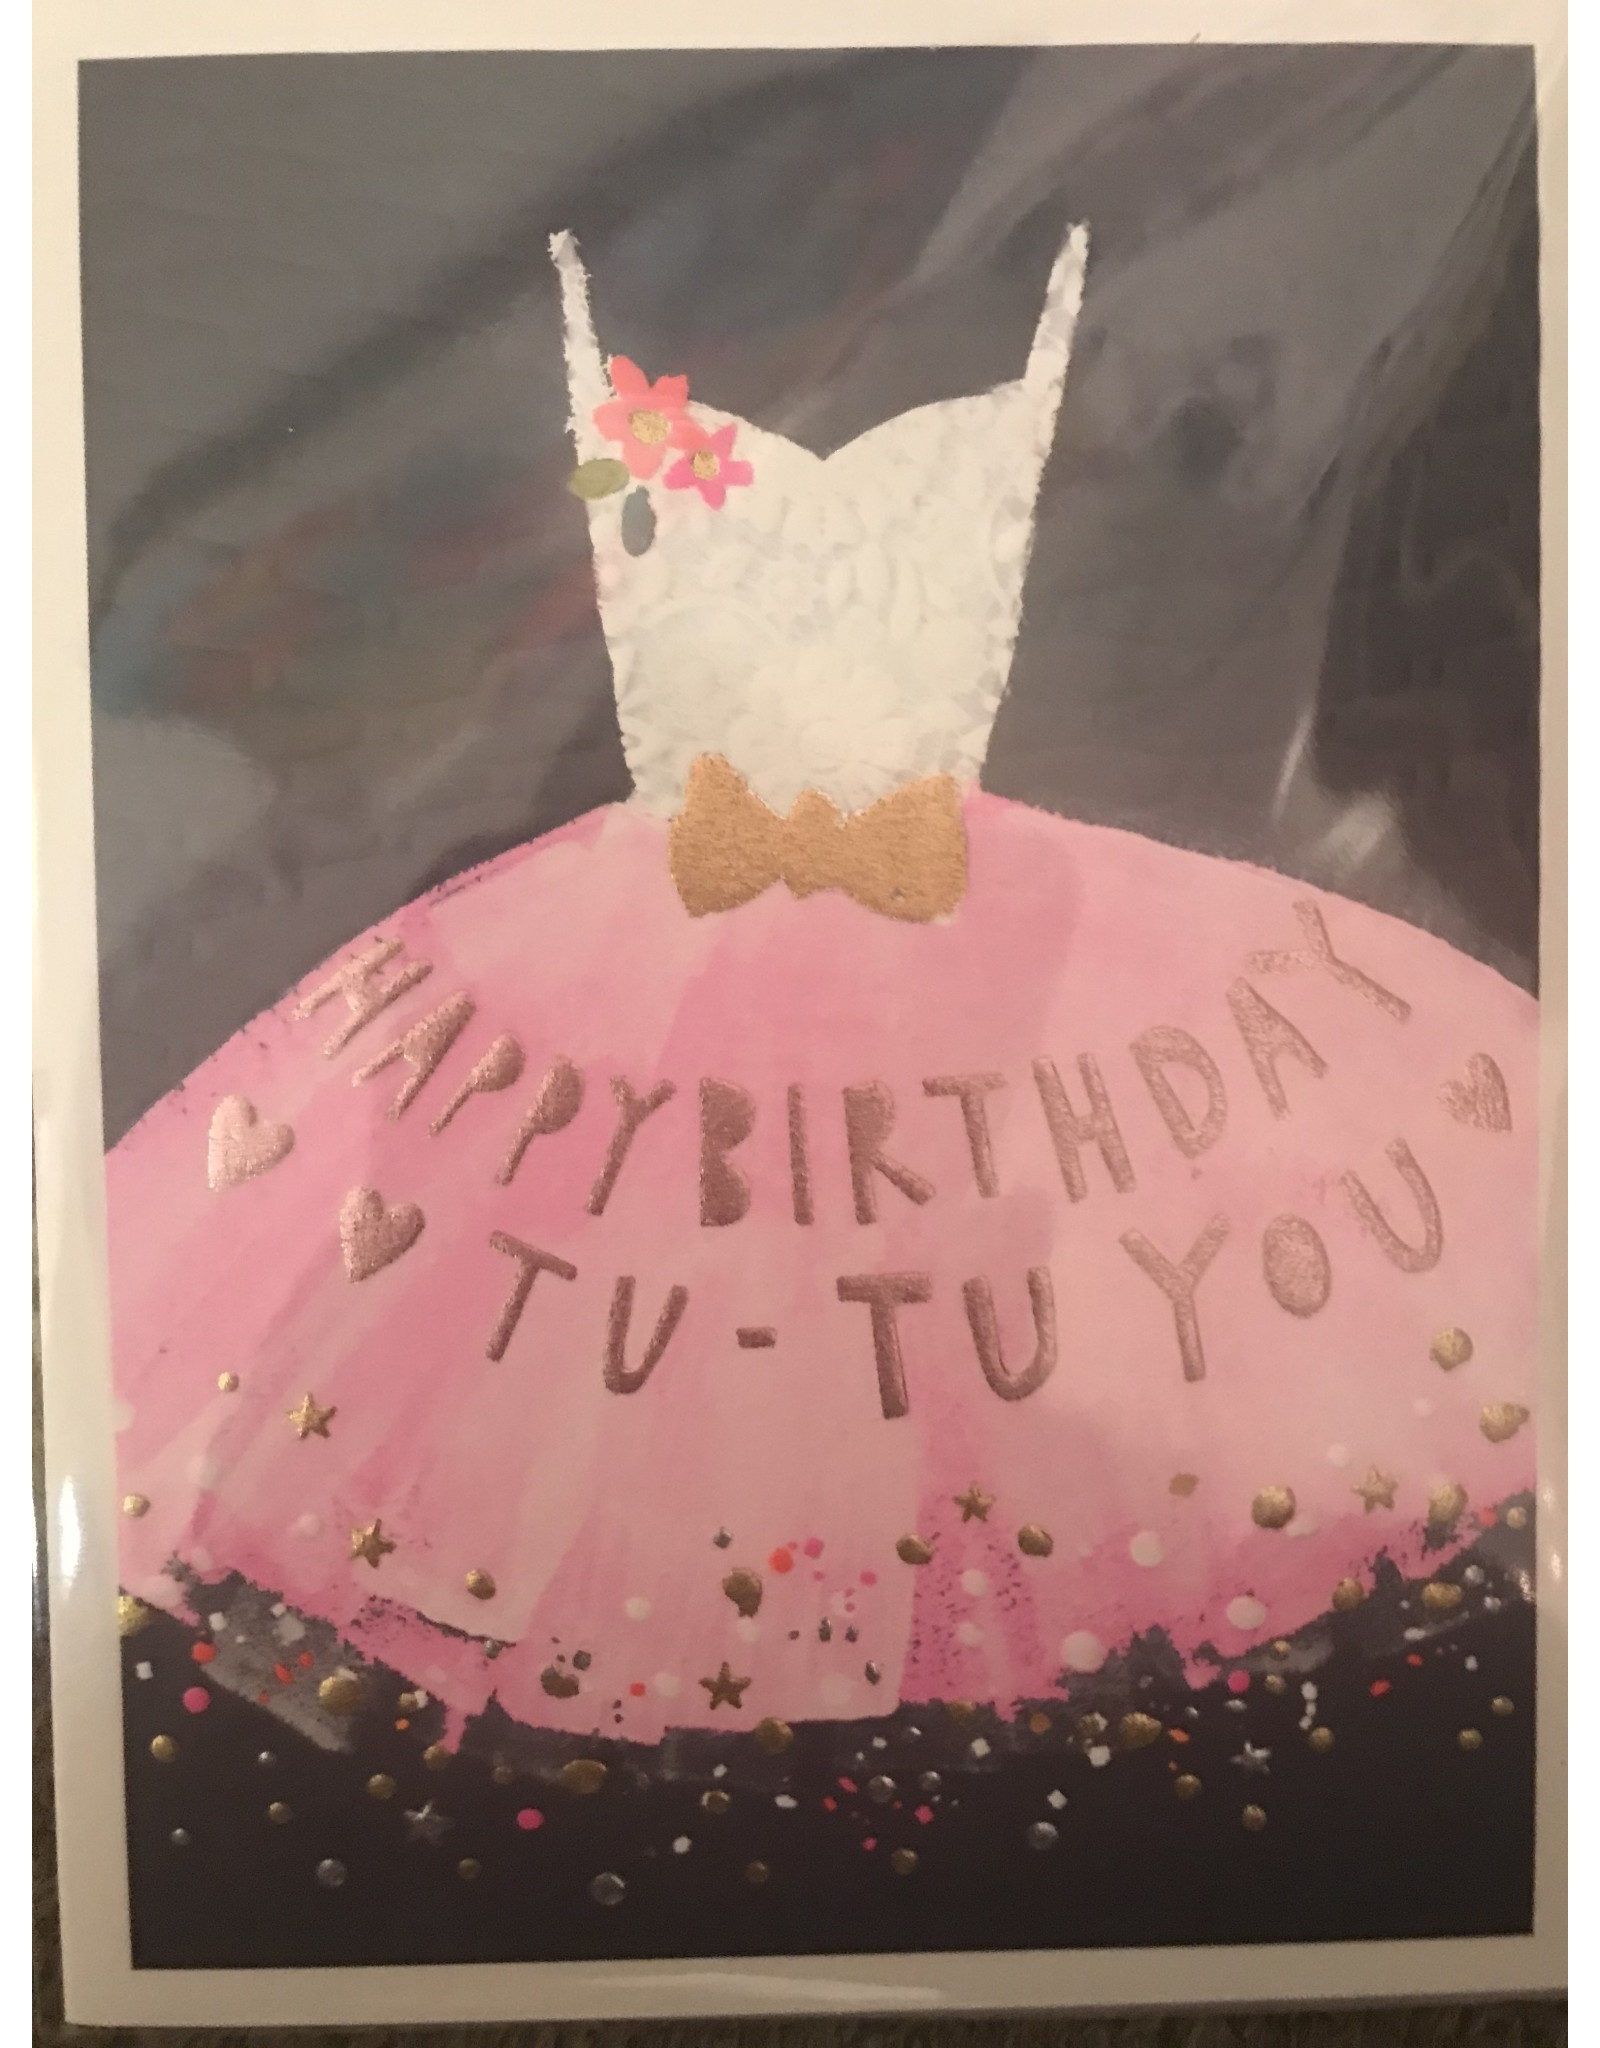 Notes & Queries Happy Birthday Tu-Tu You Card